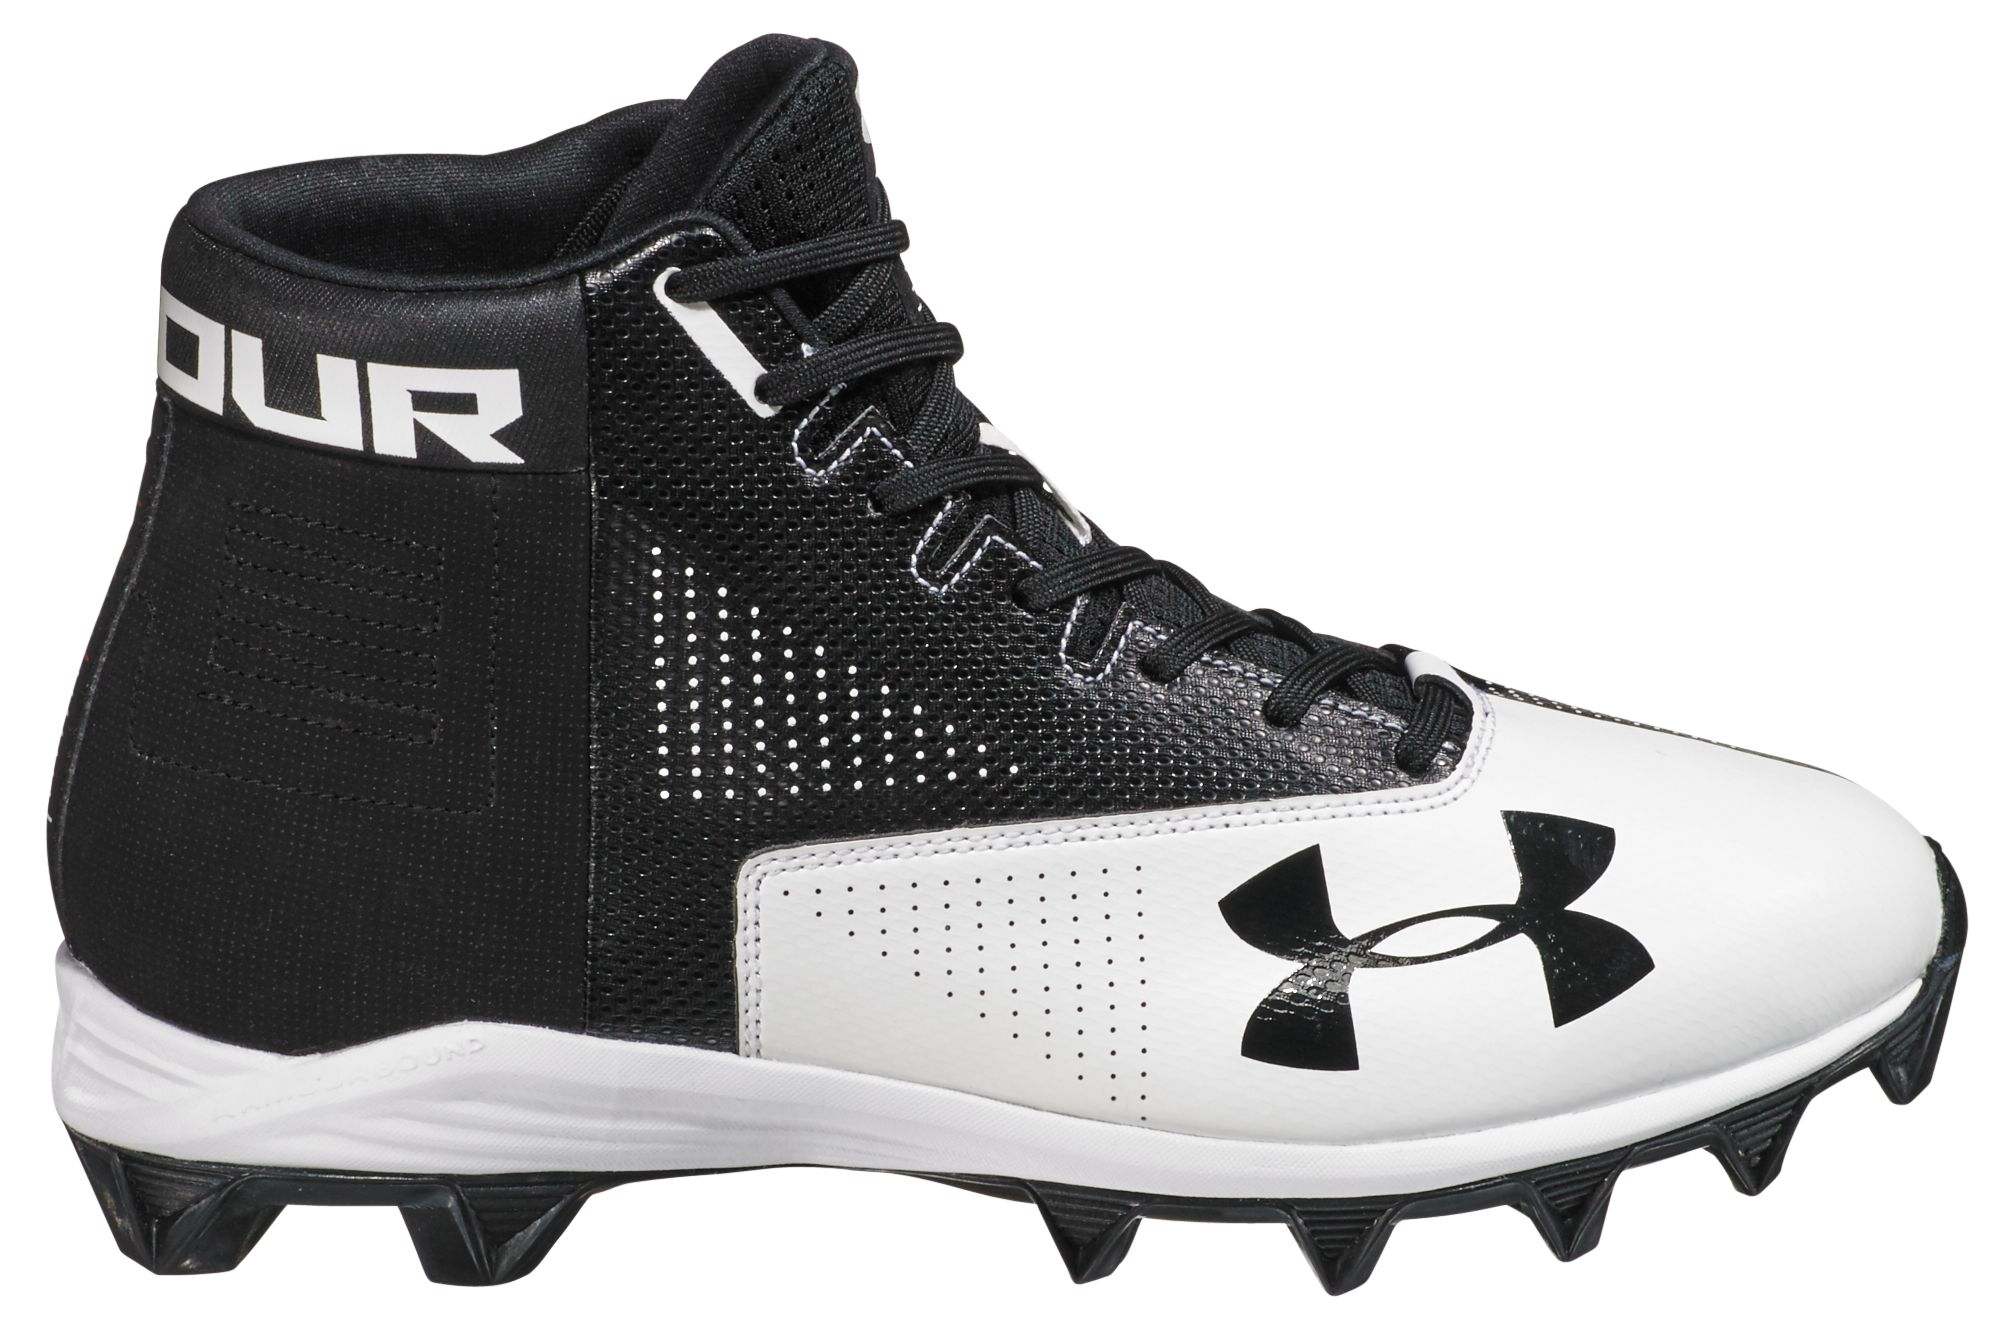 Product Image � Under Armour Men\u0027s Renegade Mid RM Football Cleats. Black/ White